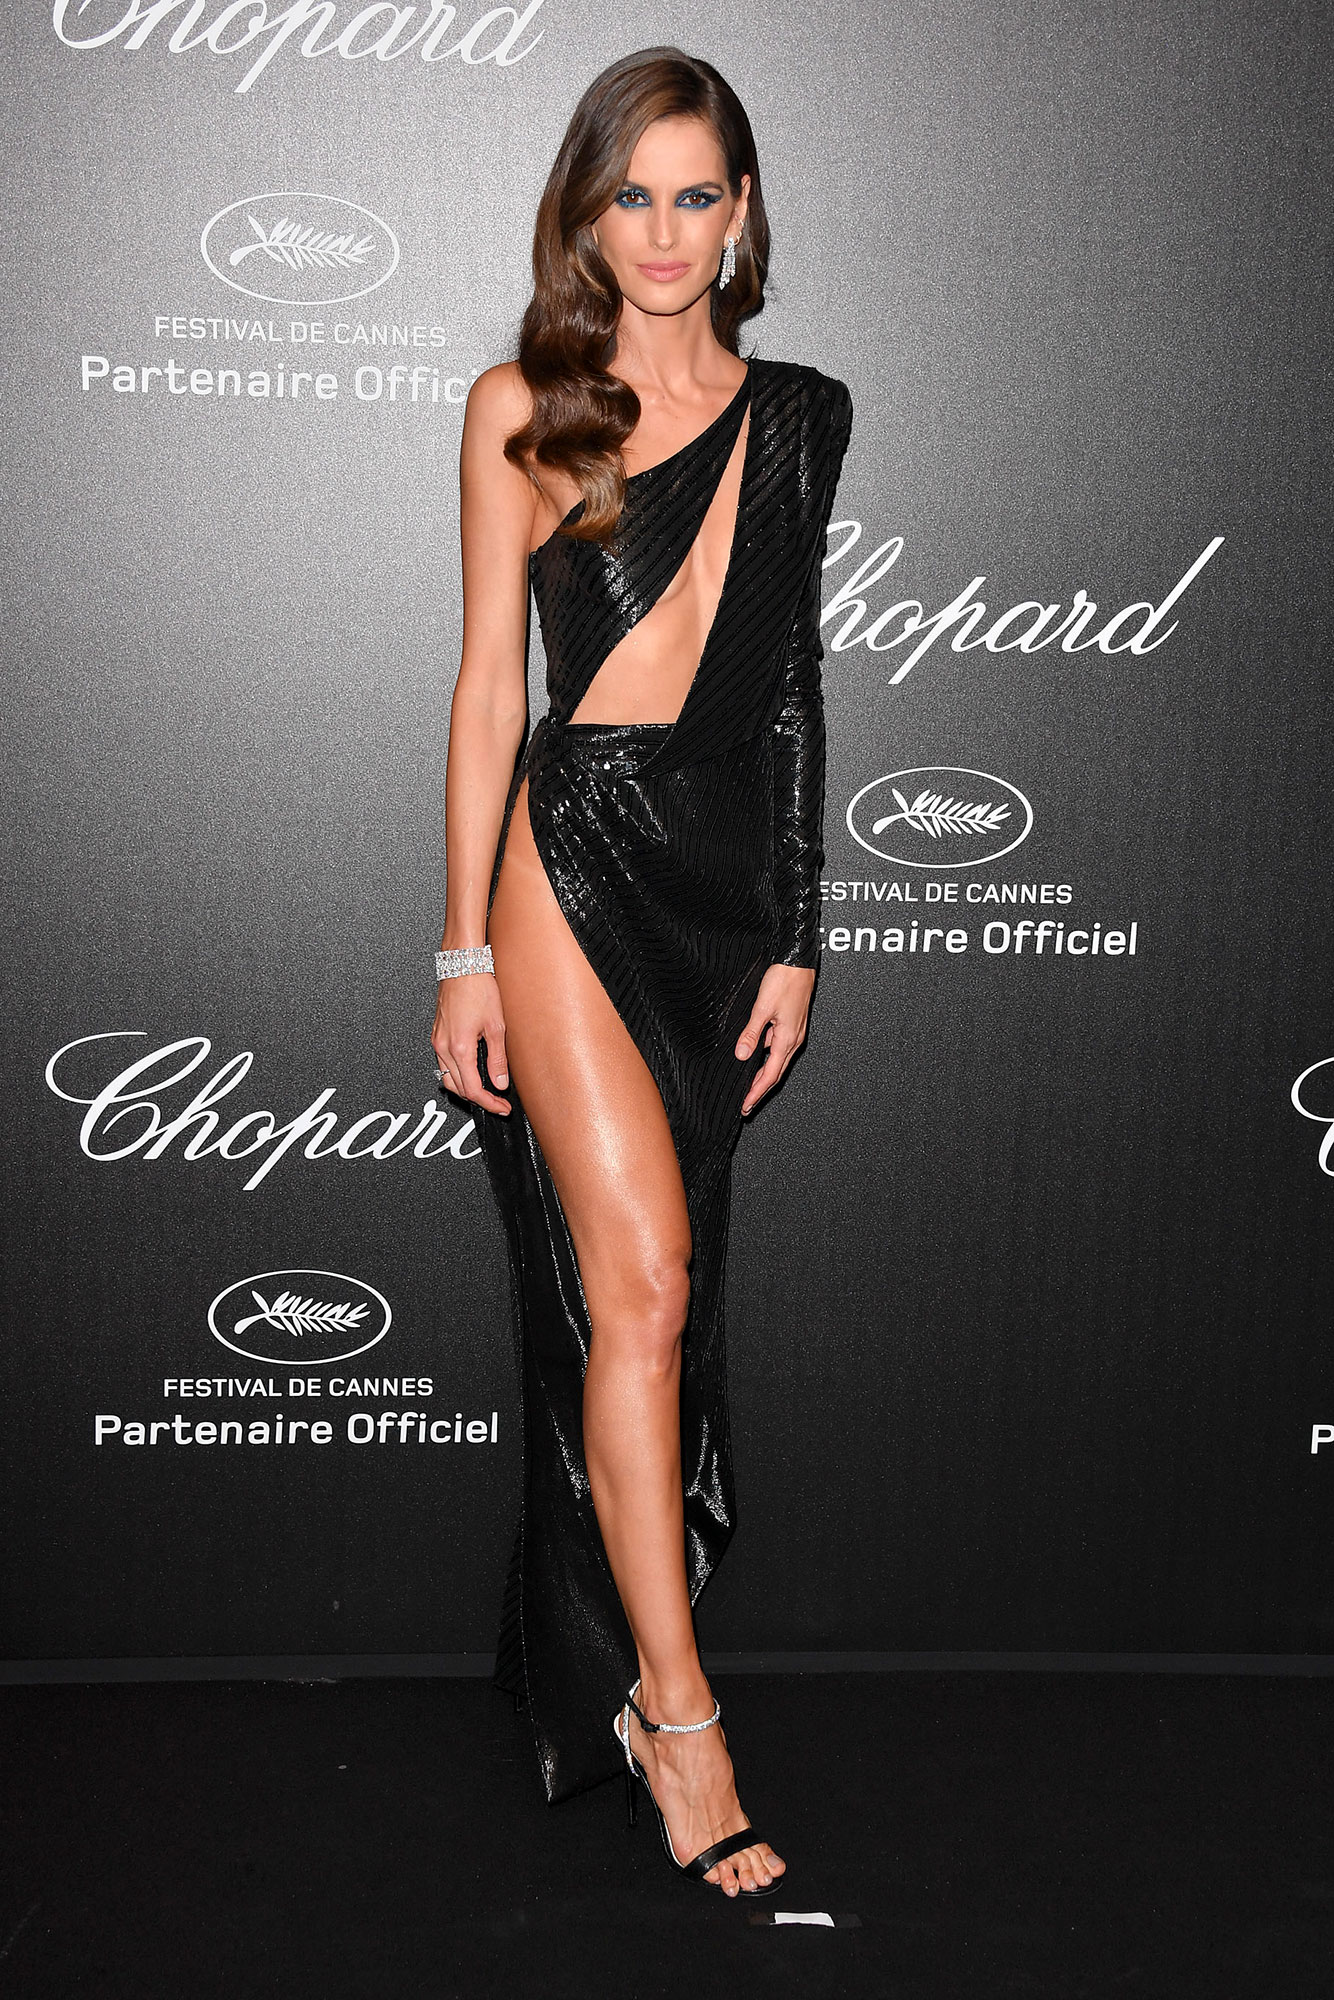 Izabel Goulart Stepping Out in Style at Cannes Film Festival - The model showed some skin in her cut-out Julien Macdonald gown and Chopard bling at the jeweler's party on Friday, May 17.